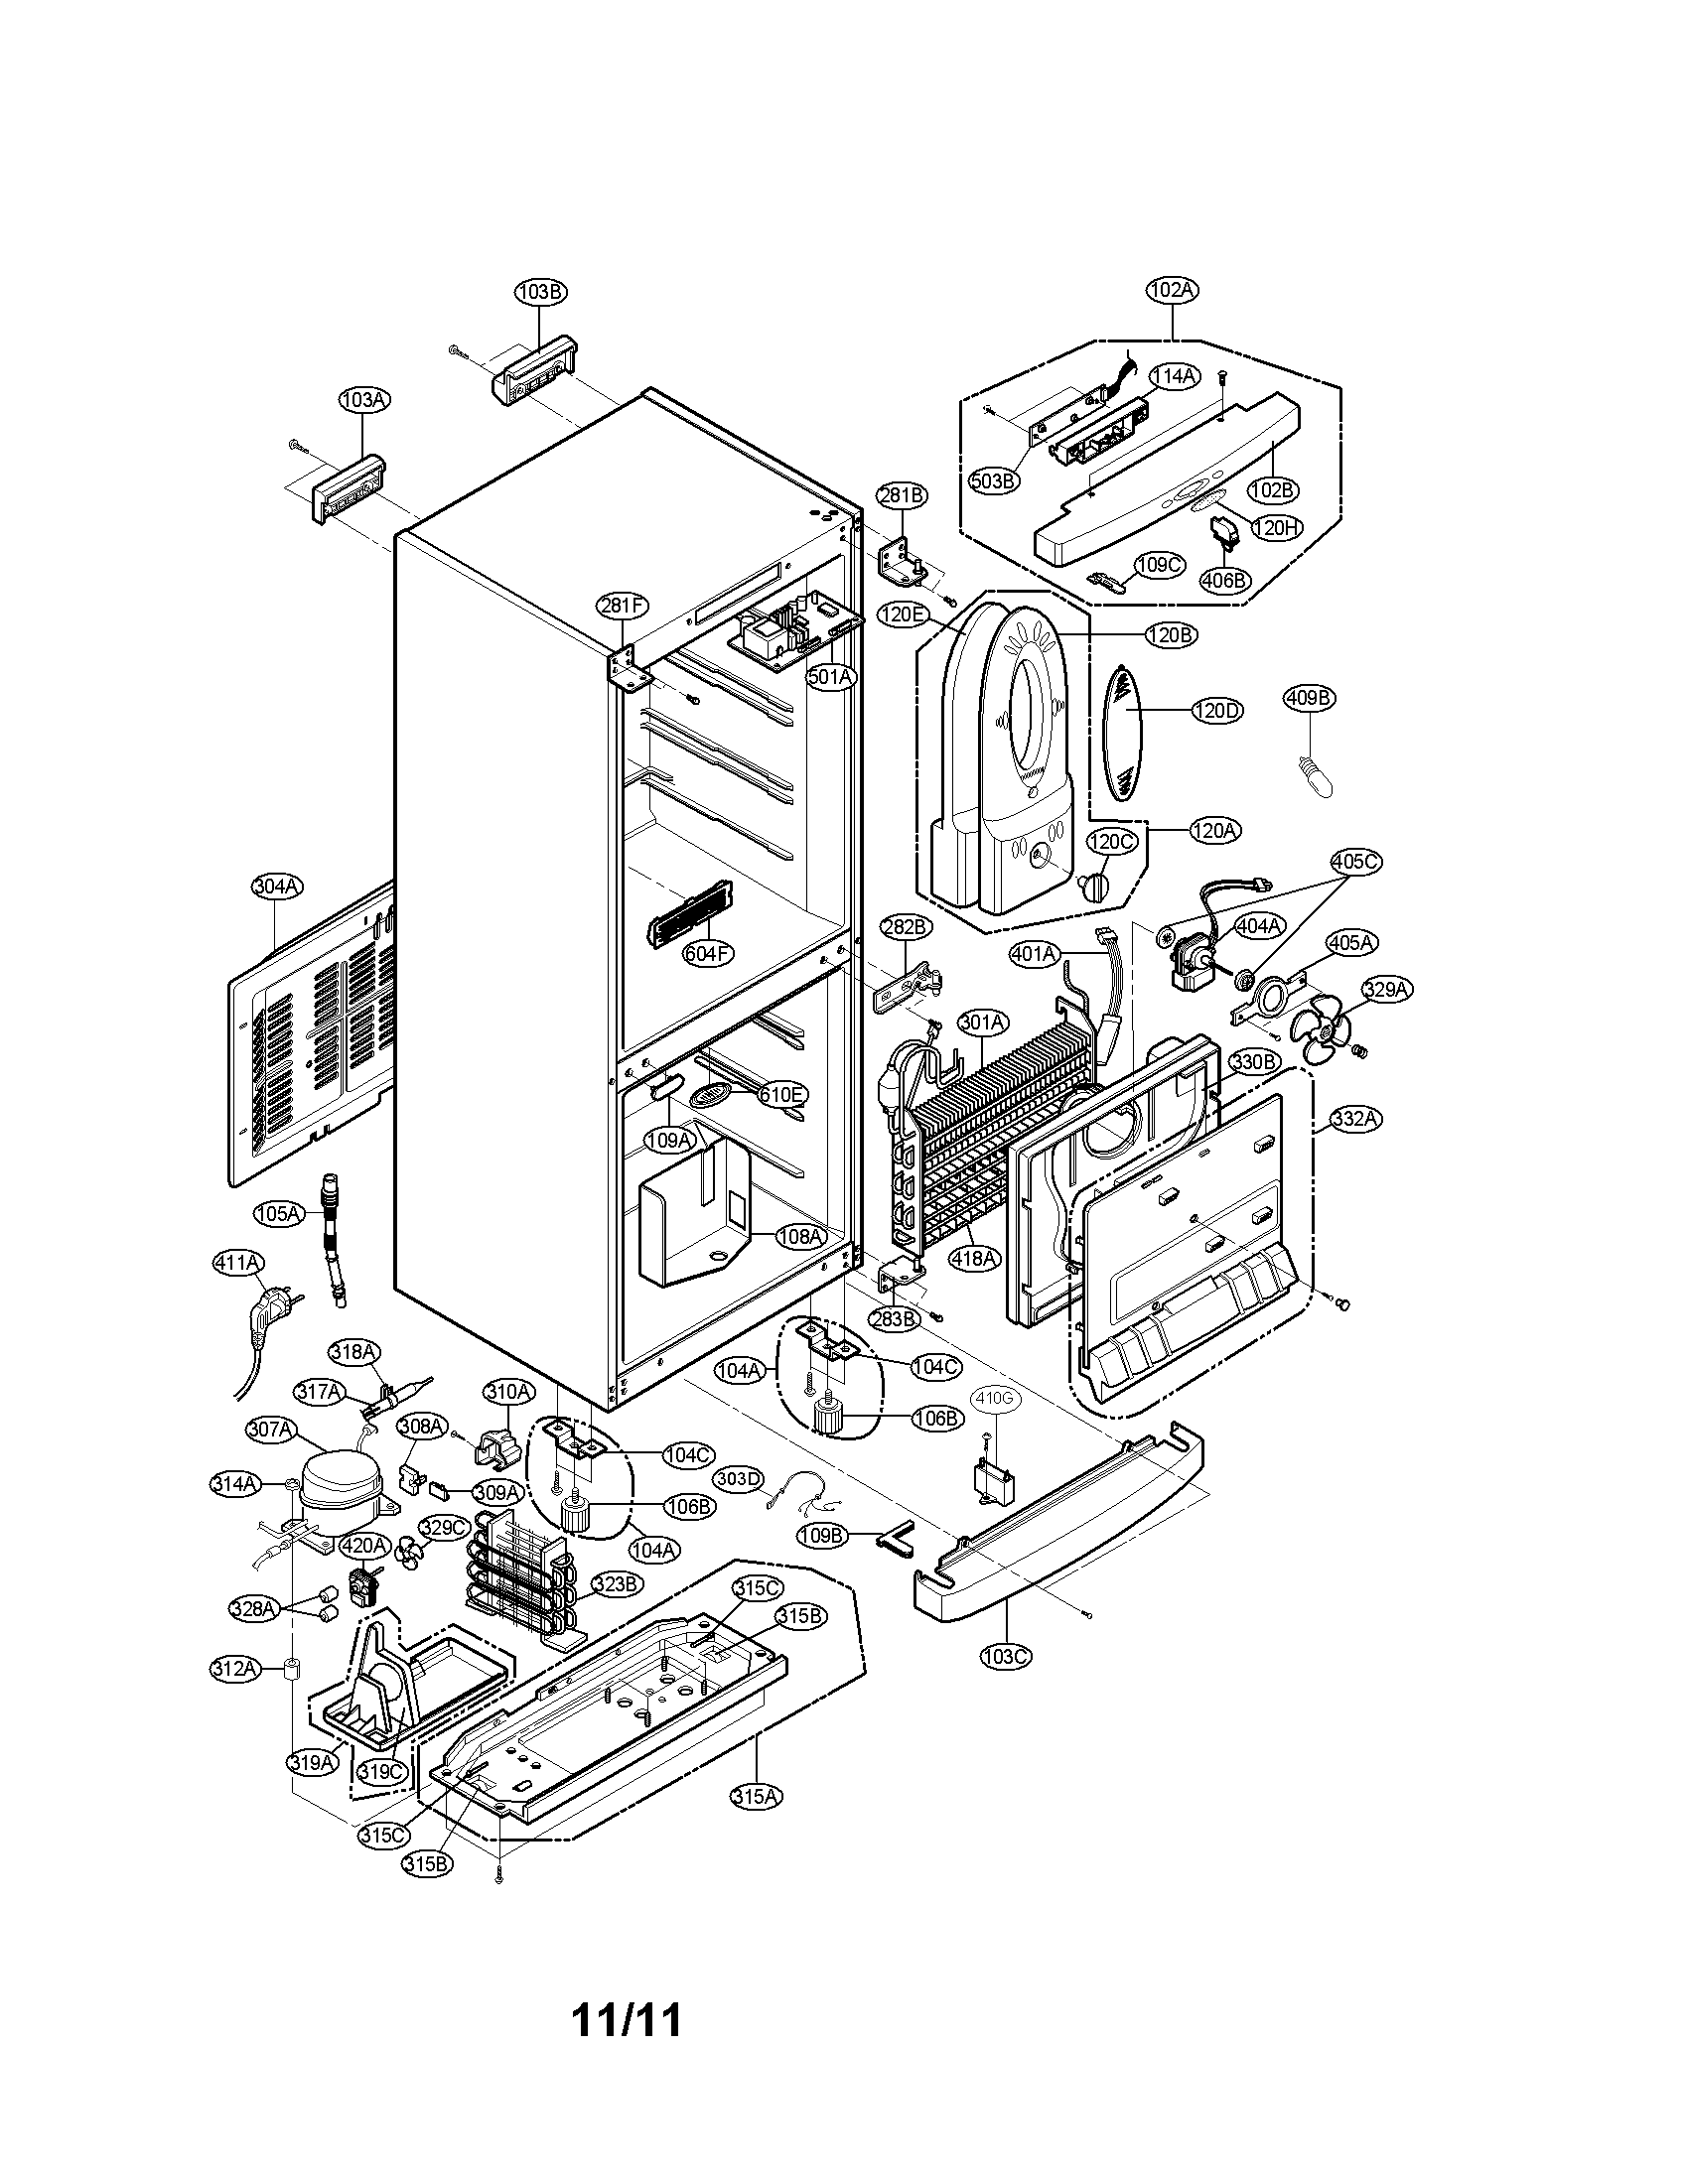 Wiring Diagram: 31 Lg Ice Maker Parts Diagram